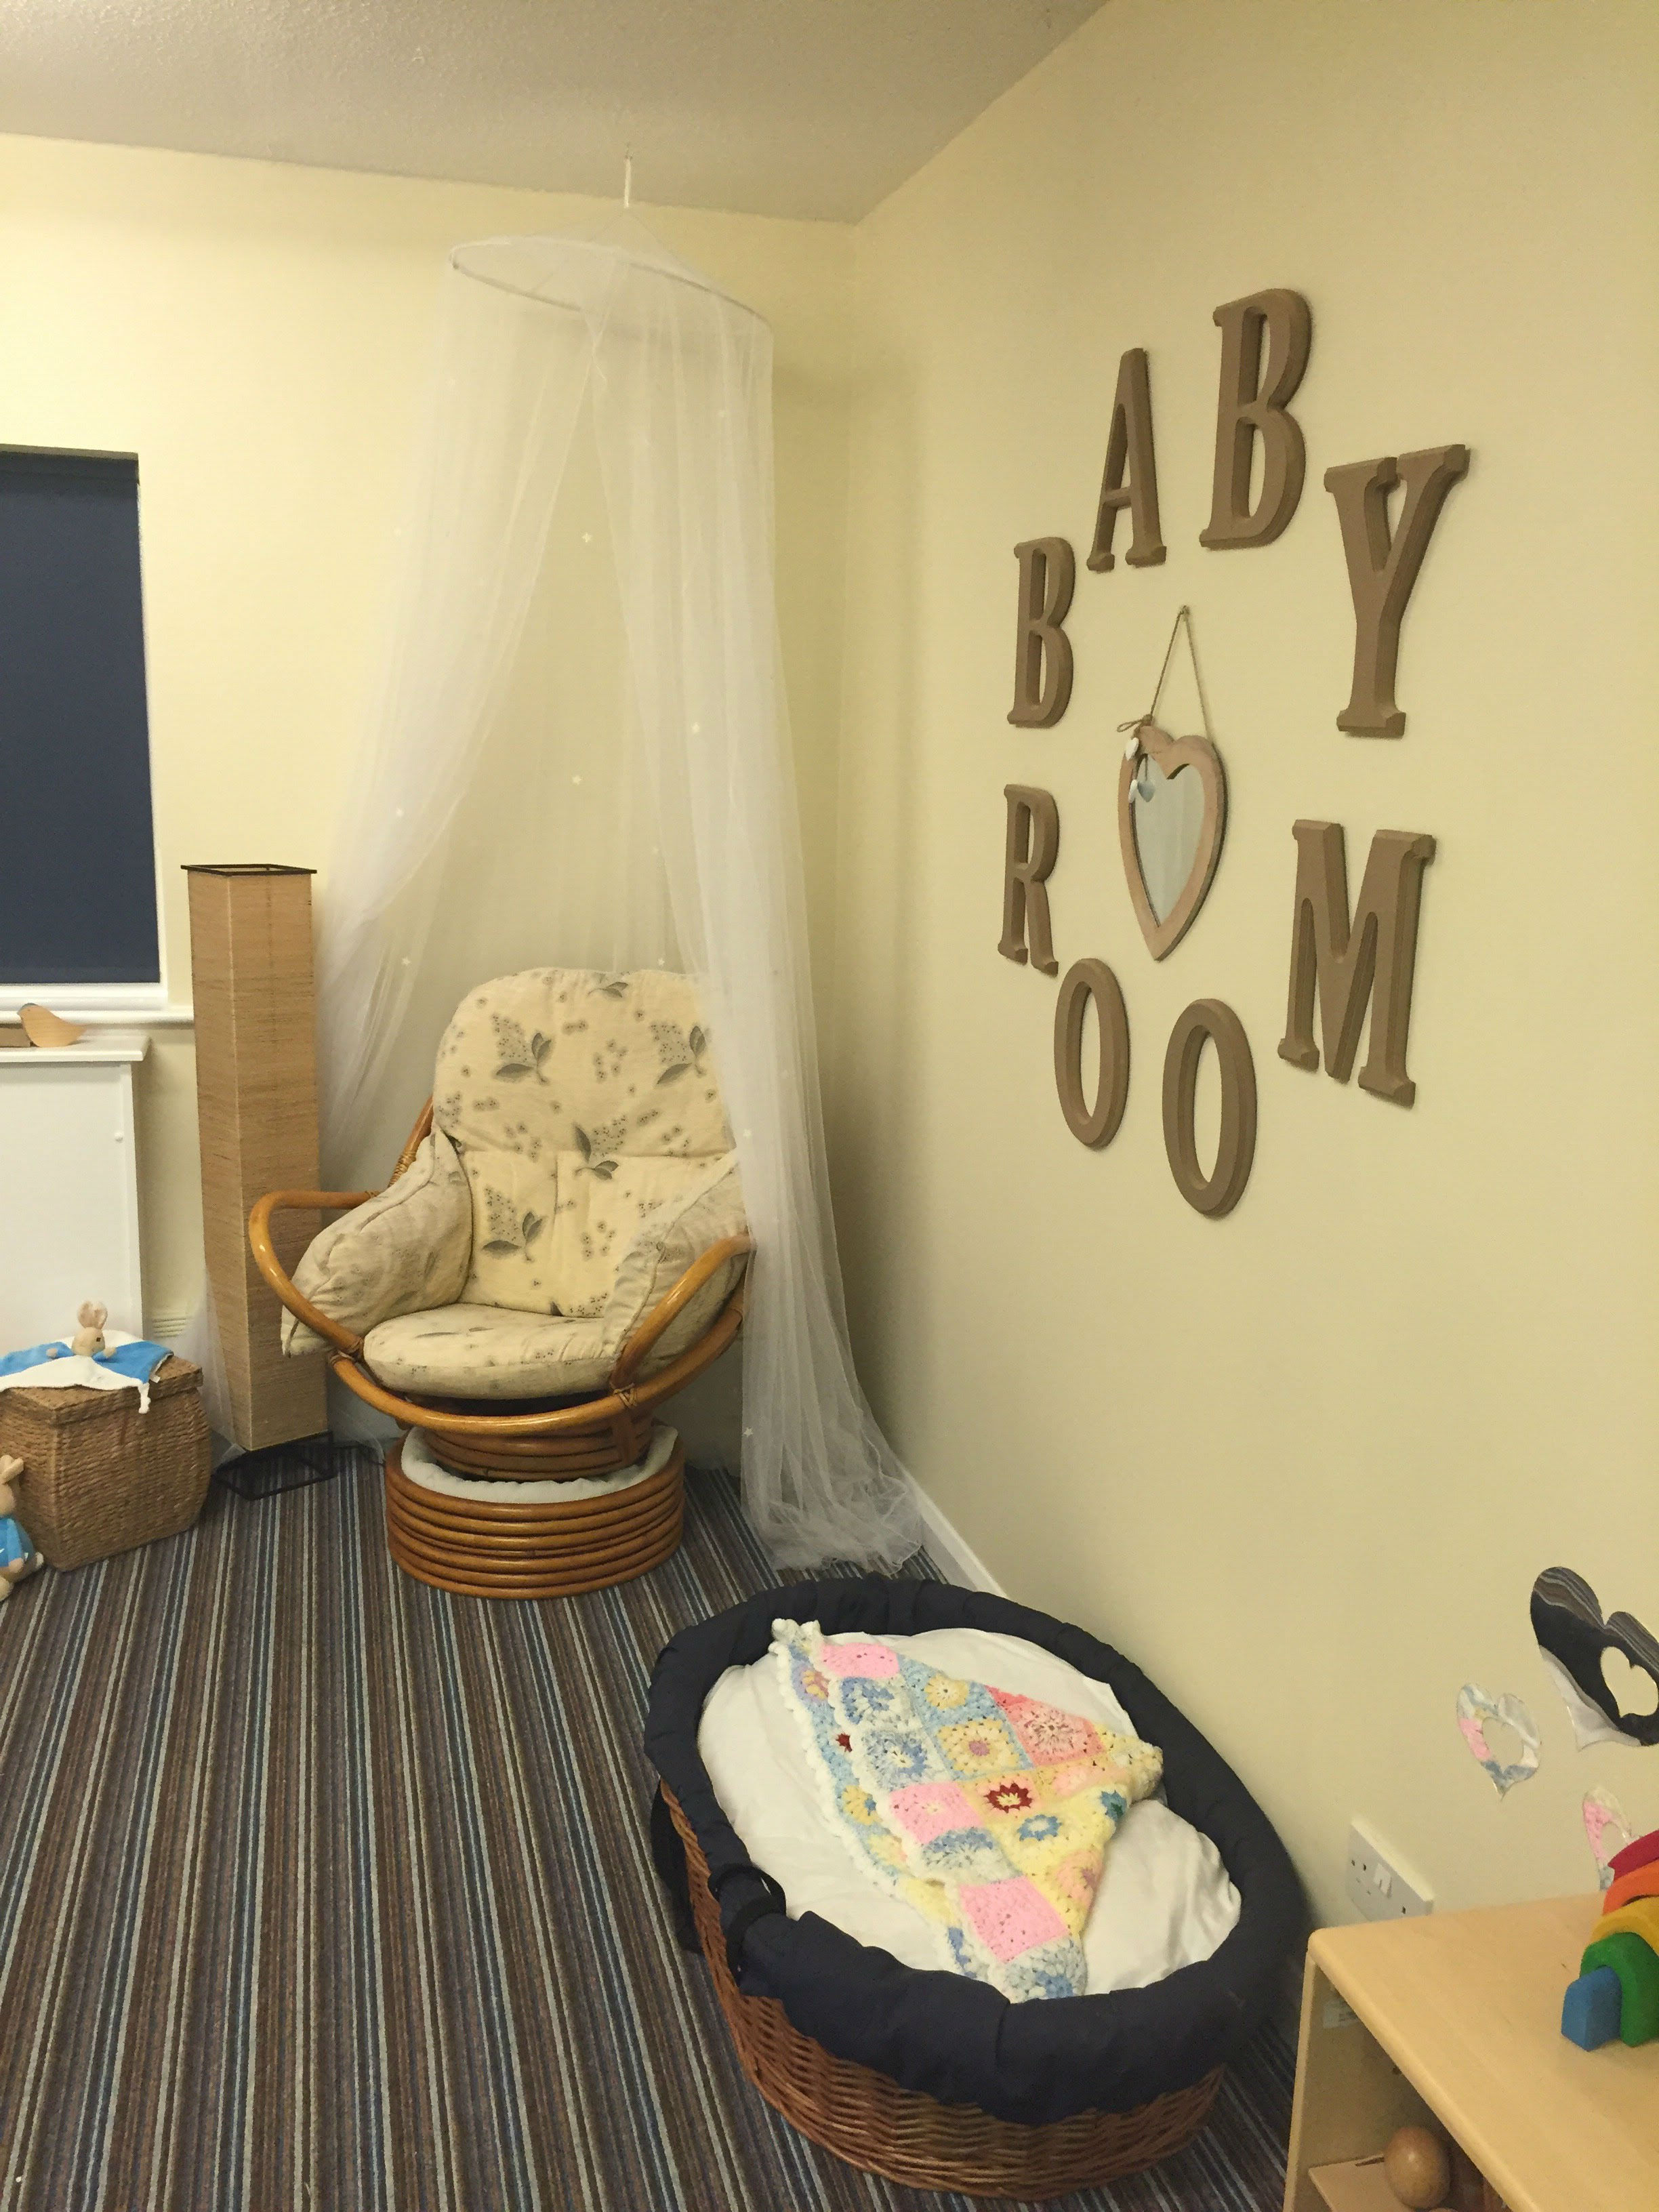 babyroom-chair-and-bed-image-newsletter